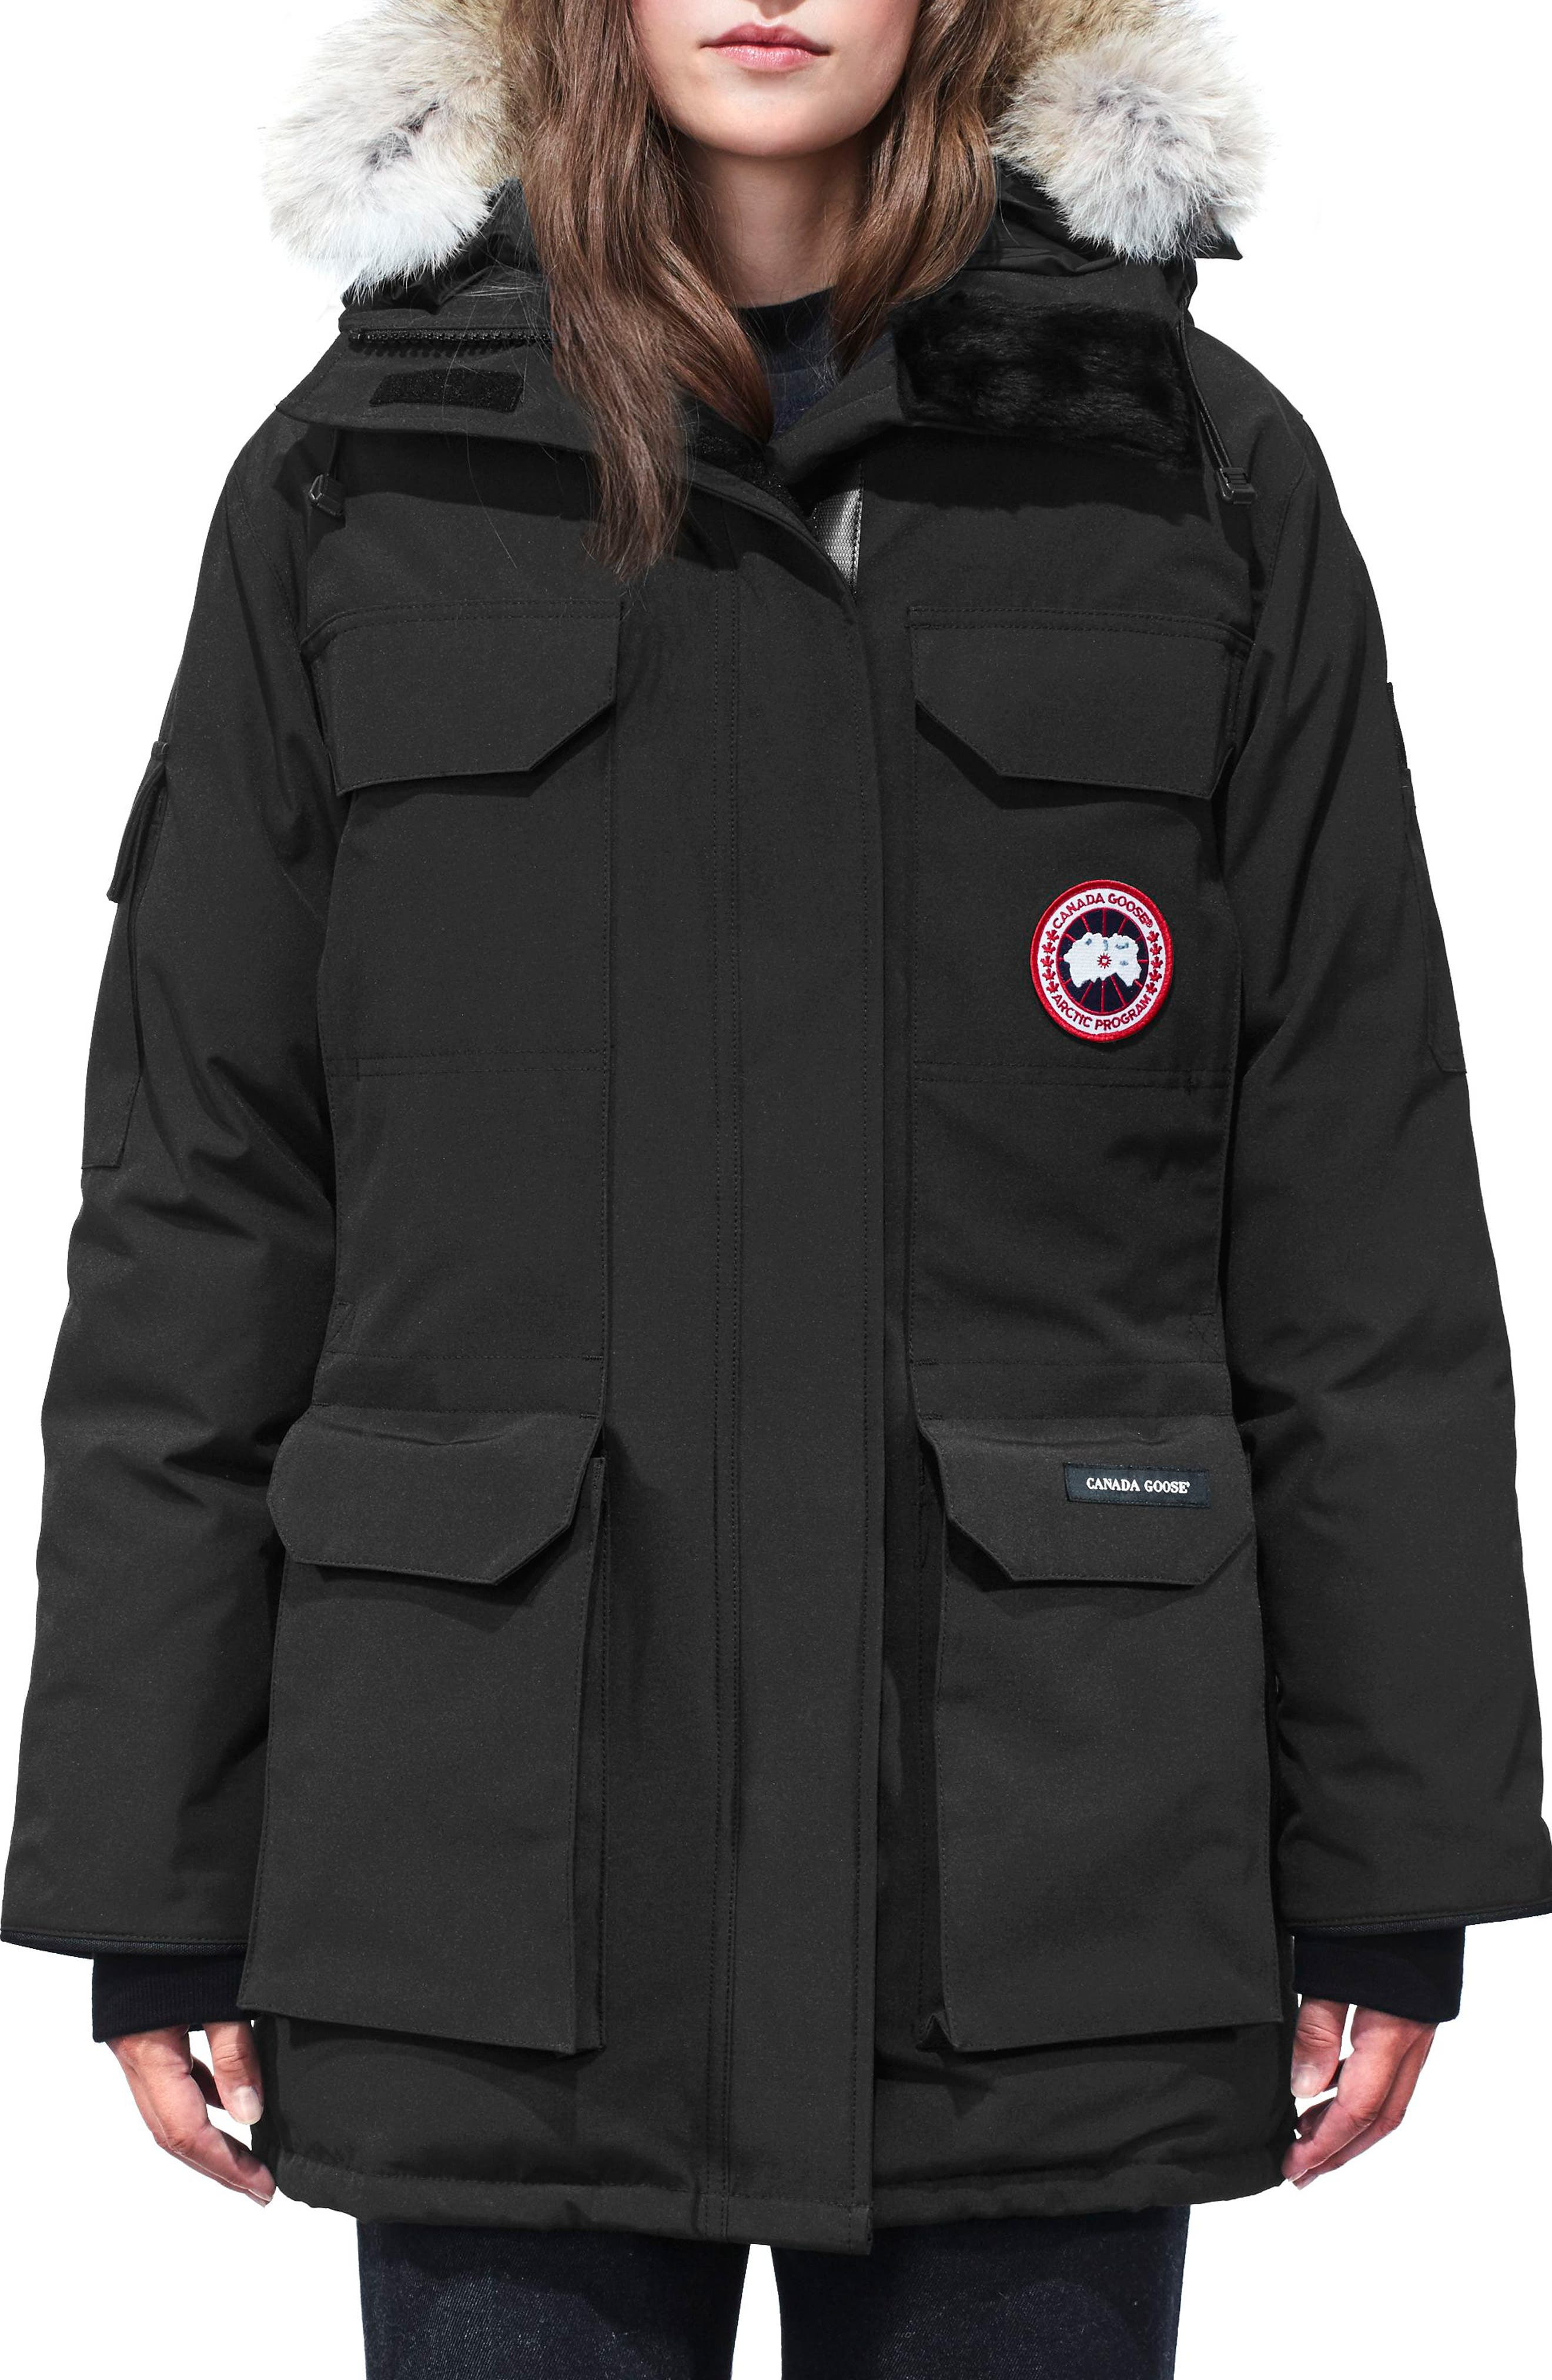 Expedition Hooded Down Parka with Genuine Coyote Fur Trim,                         Main,                         color, 001